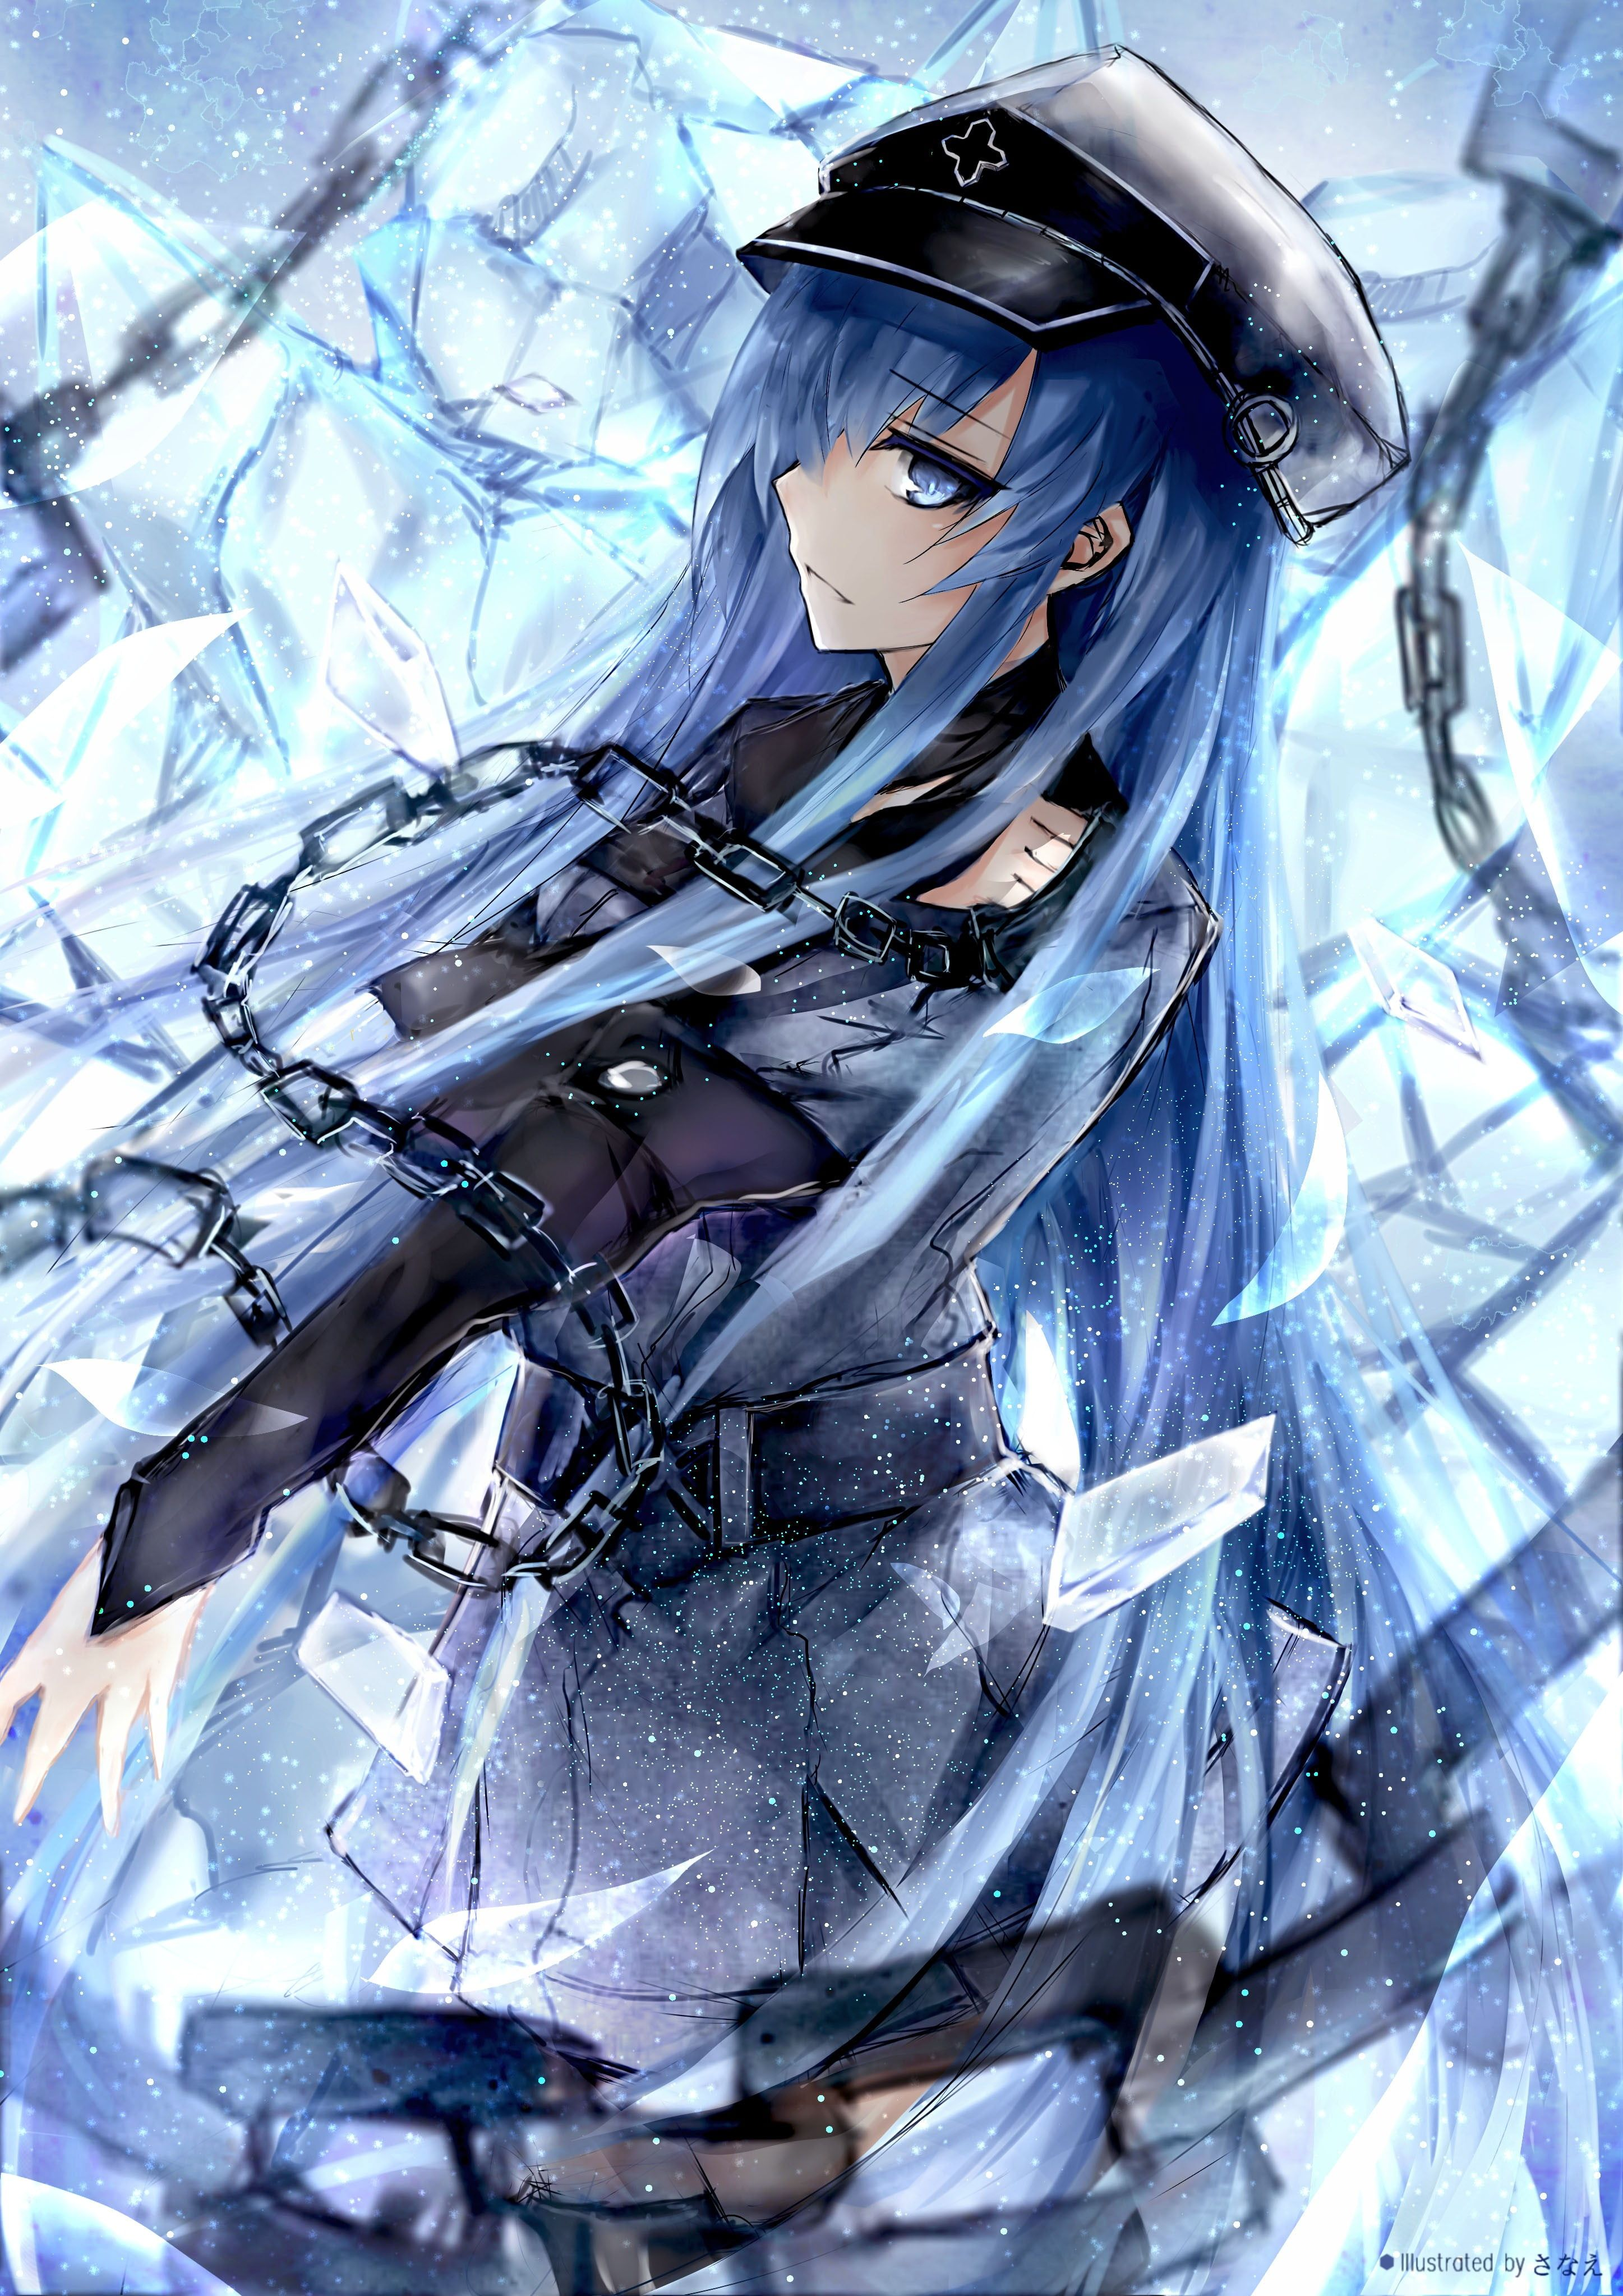 Blue Haired Female Anime Character Akame Ga Kill Esdeath Ice